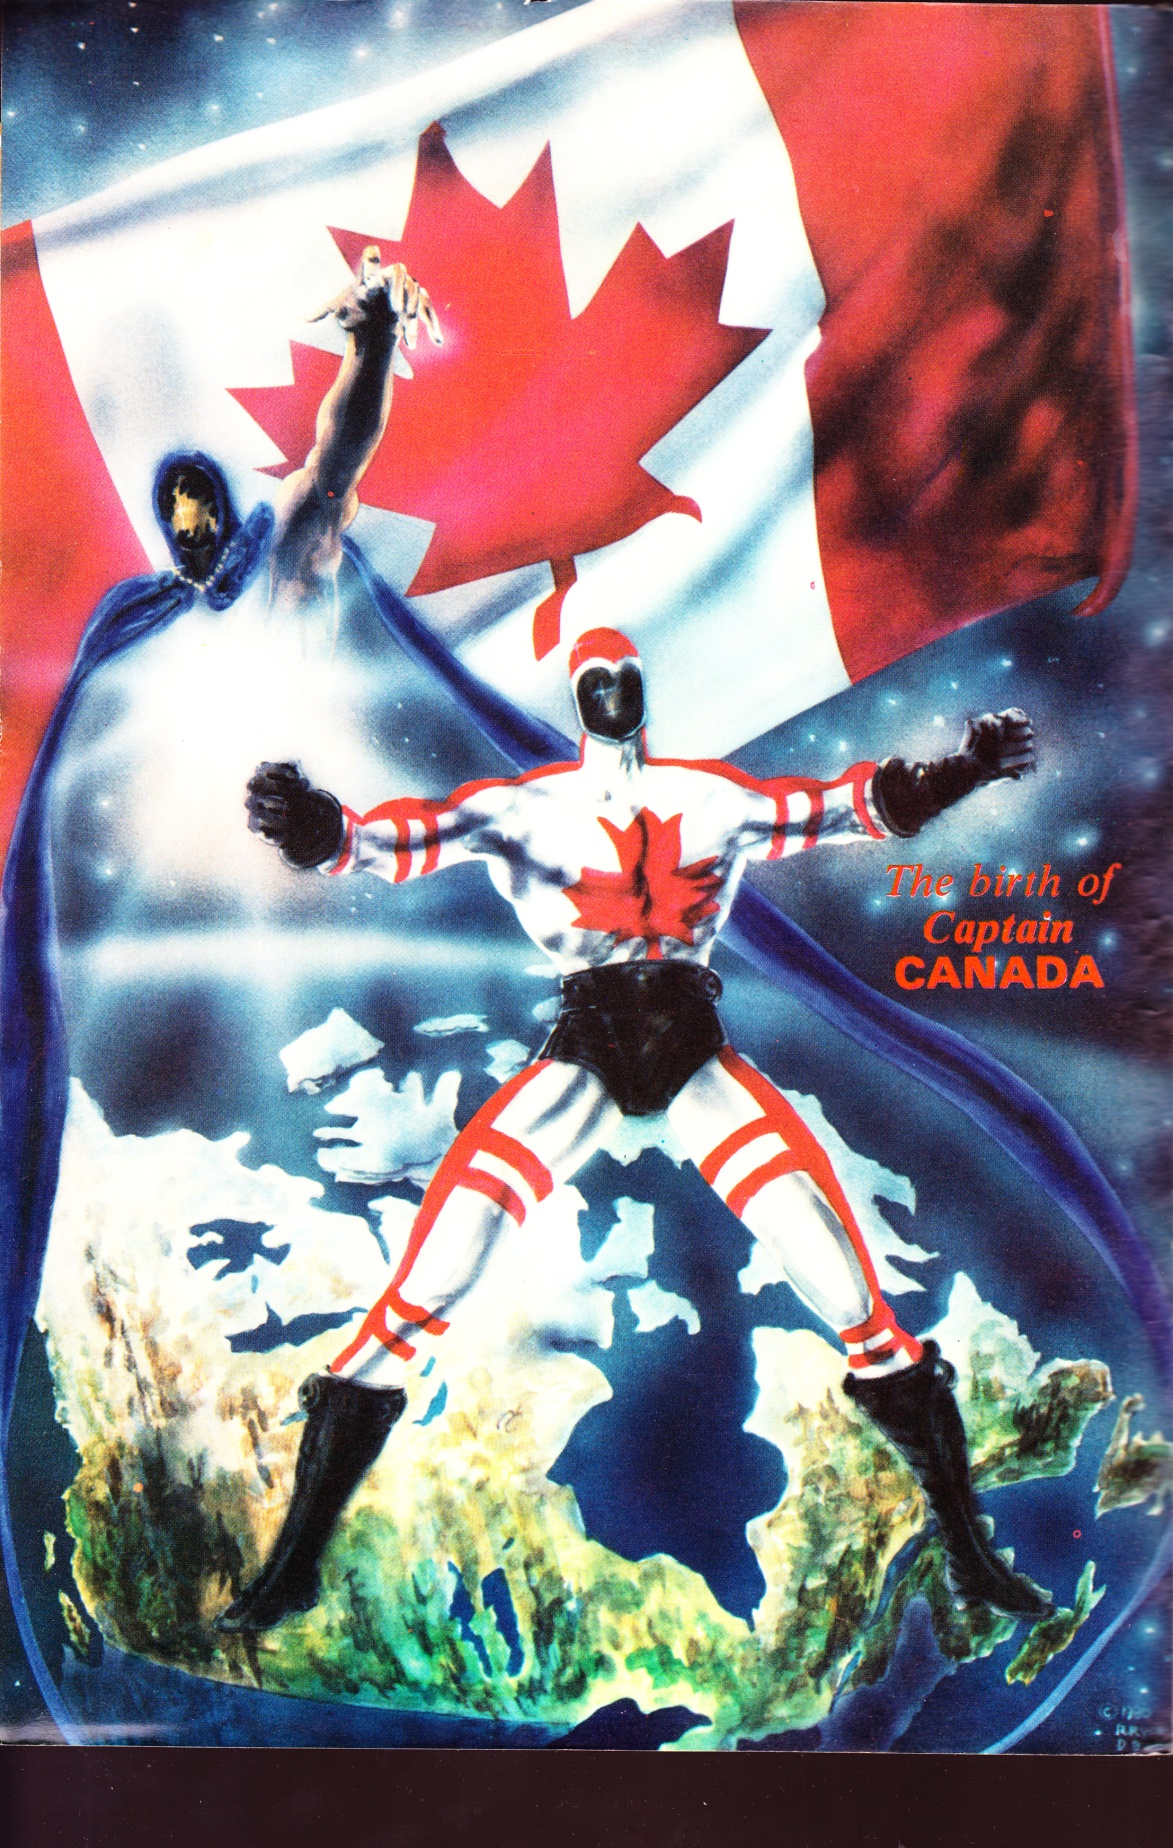 C:\Users\Robert\Documents\CARTOONING ILLUSTRATION ANIMATION\IMAGE CARTOON\IMAGE CARTOON C\CAPTAIN CANADA, Captain Newfoundland, 1, 1981, ifc.jpg